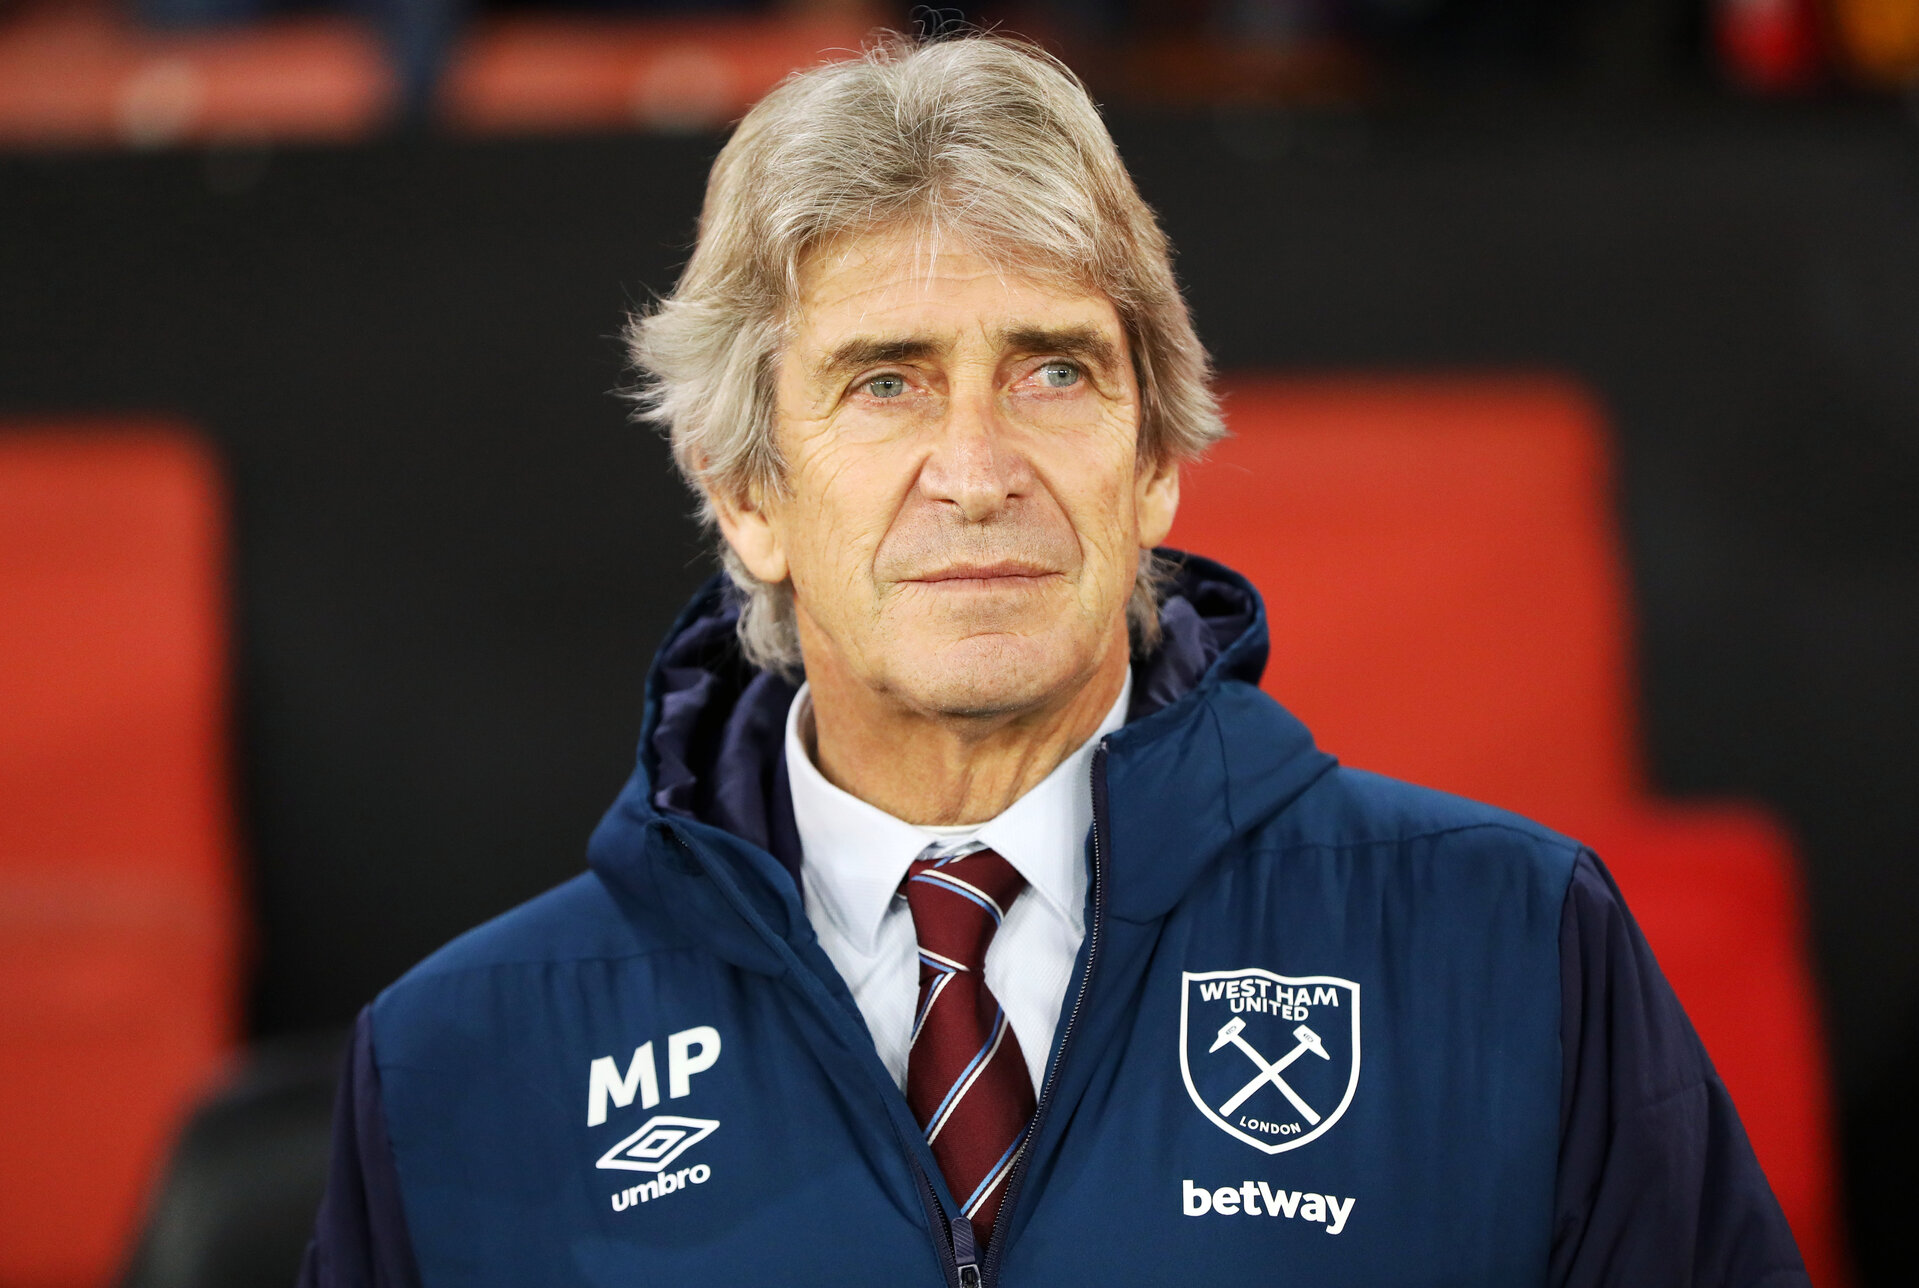 SOUTHAMPTON, ENGLAND - DECEMBER 27:  Manuel Pellegrini during the Premier League match between Southampton FC and West Ham United at St Mary's Stadium on December 26, 2018 in Southampton, United Kingdom. (Photo by Chris Moorhouse/Southampton FC via Getty Images)